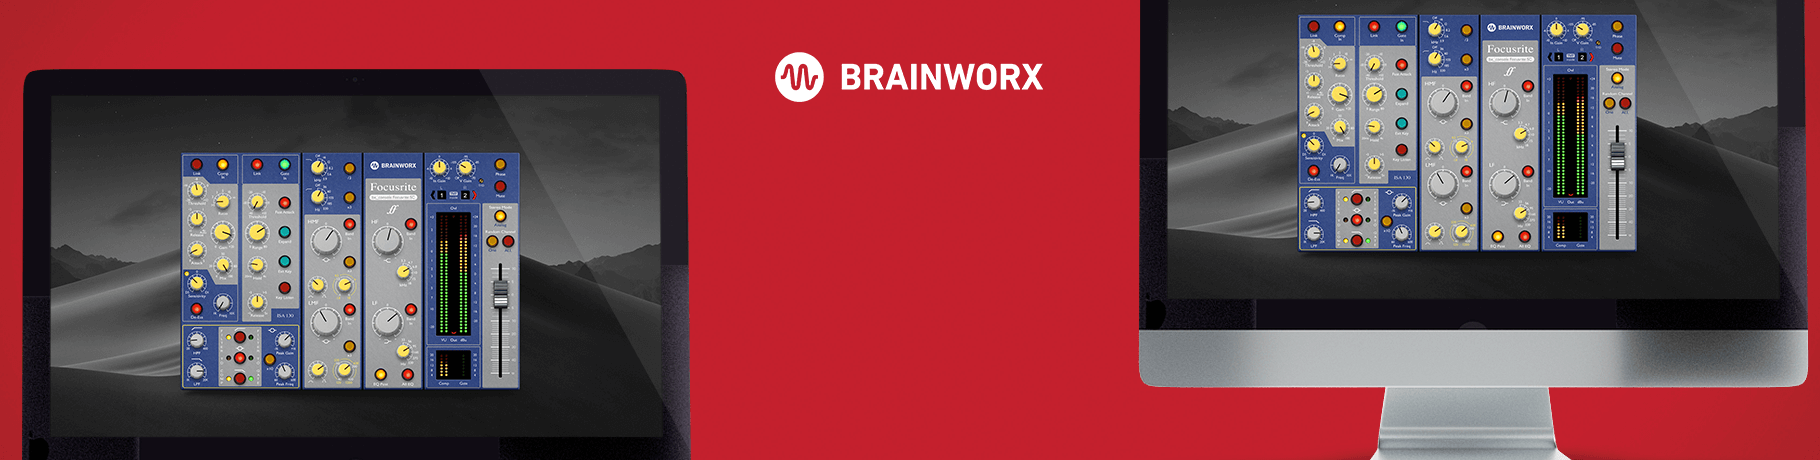 1820-brainworx-header.png